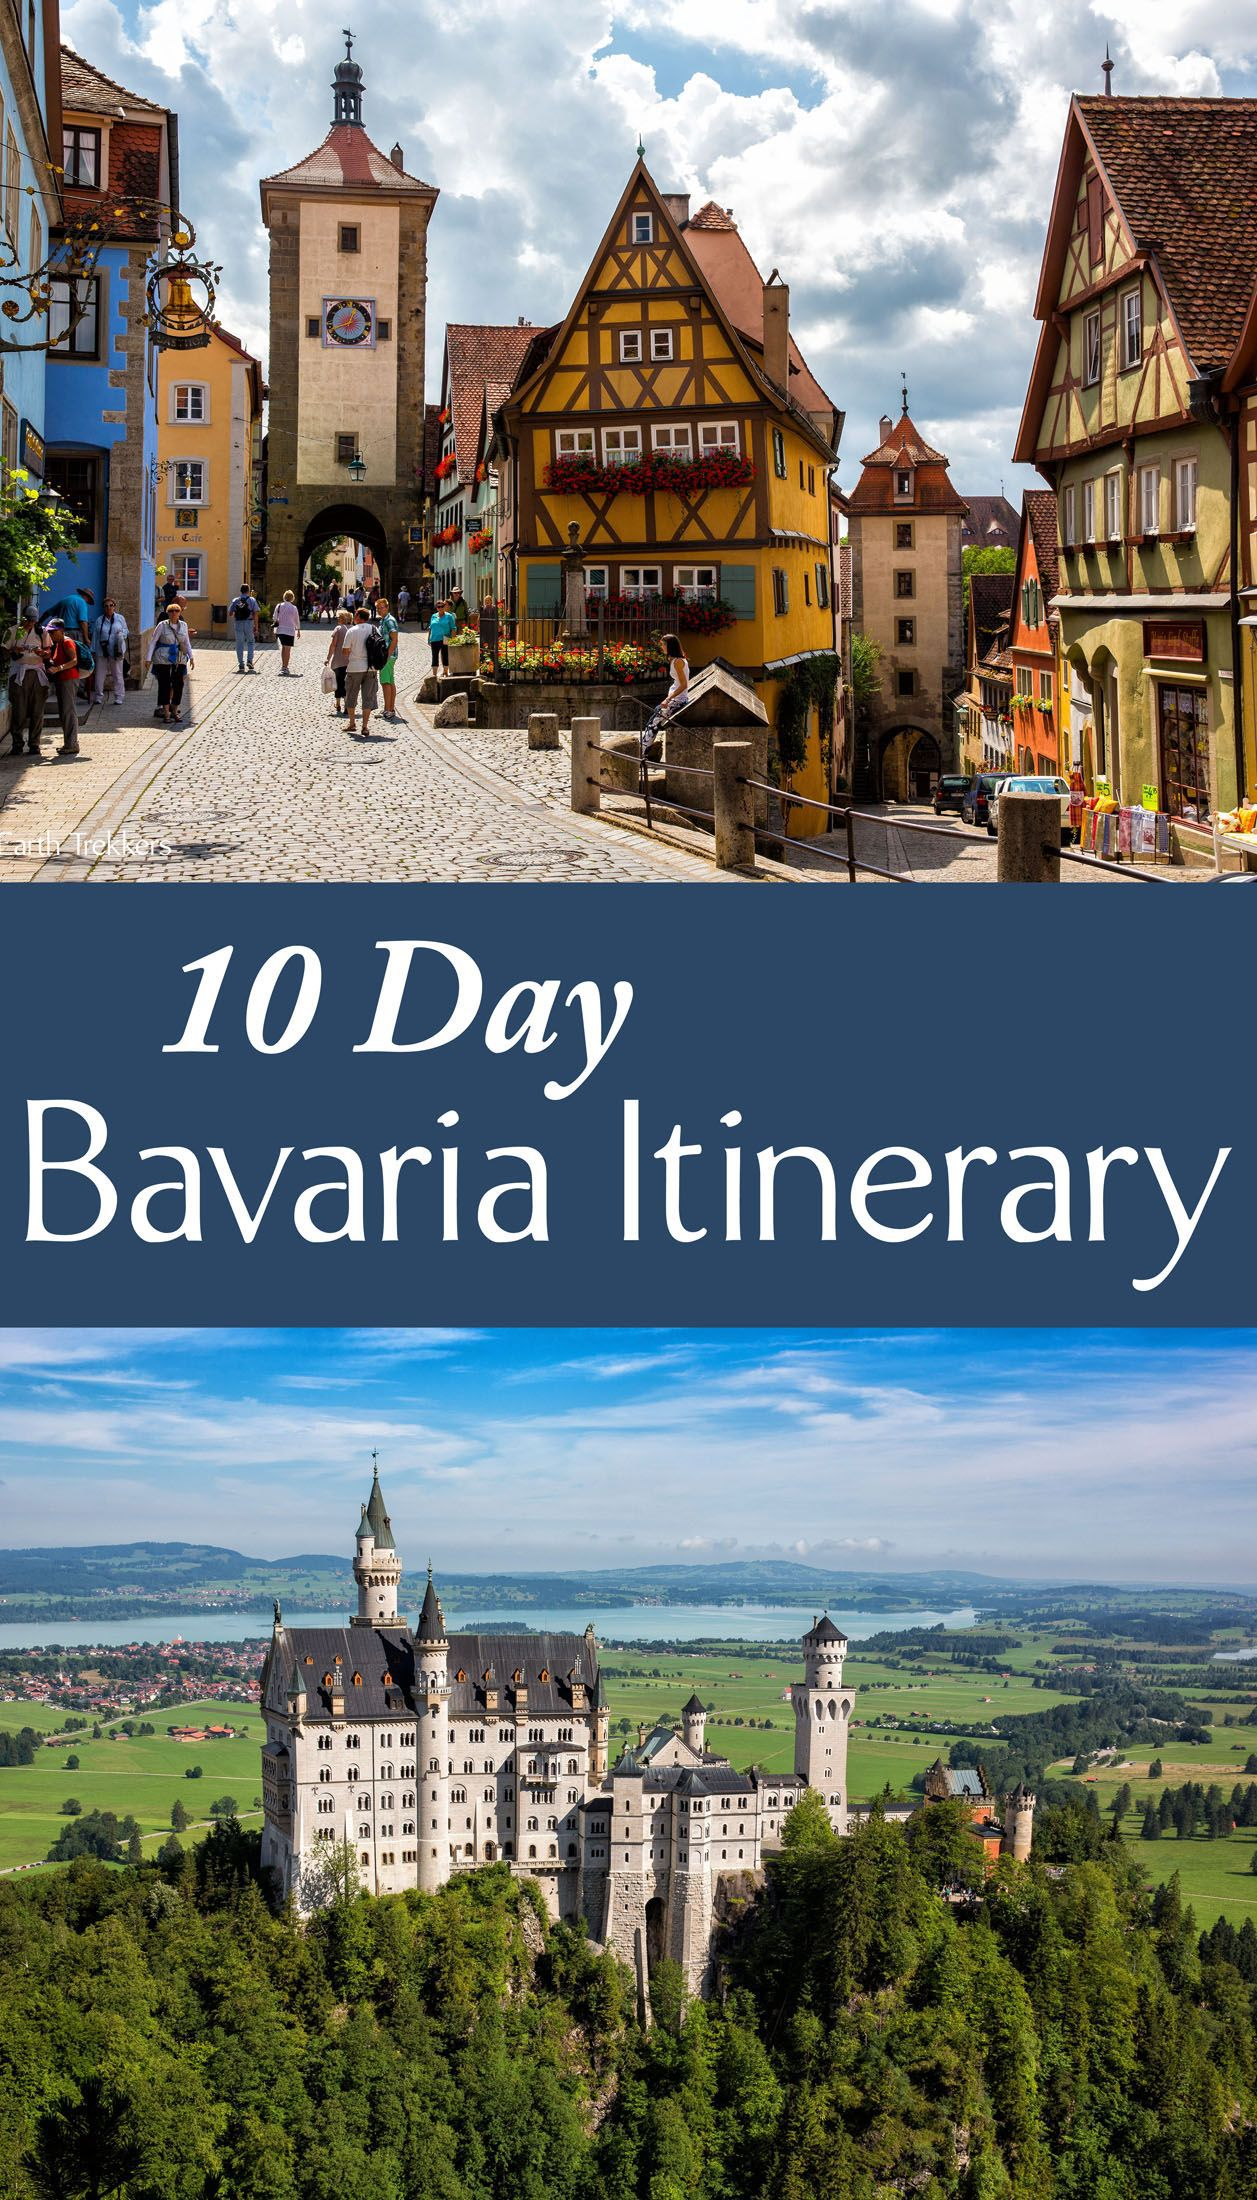 10 day Bavaria Itinerary